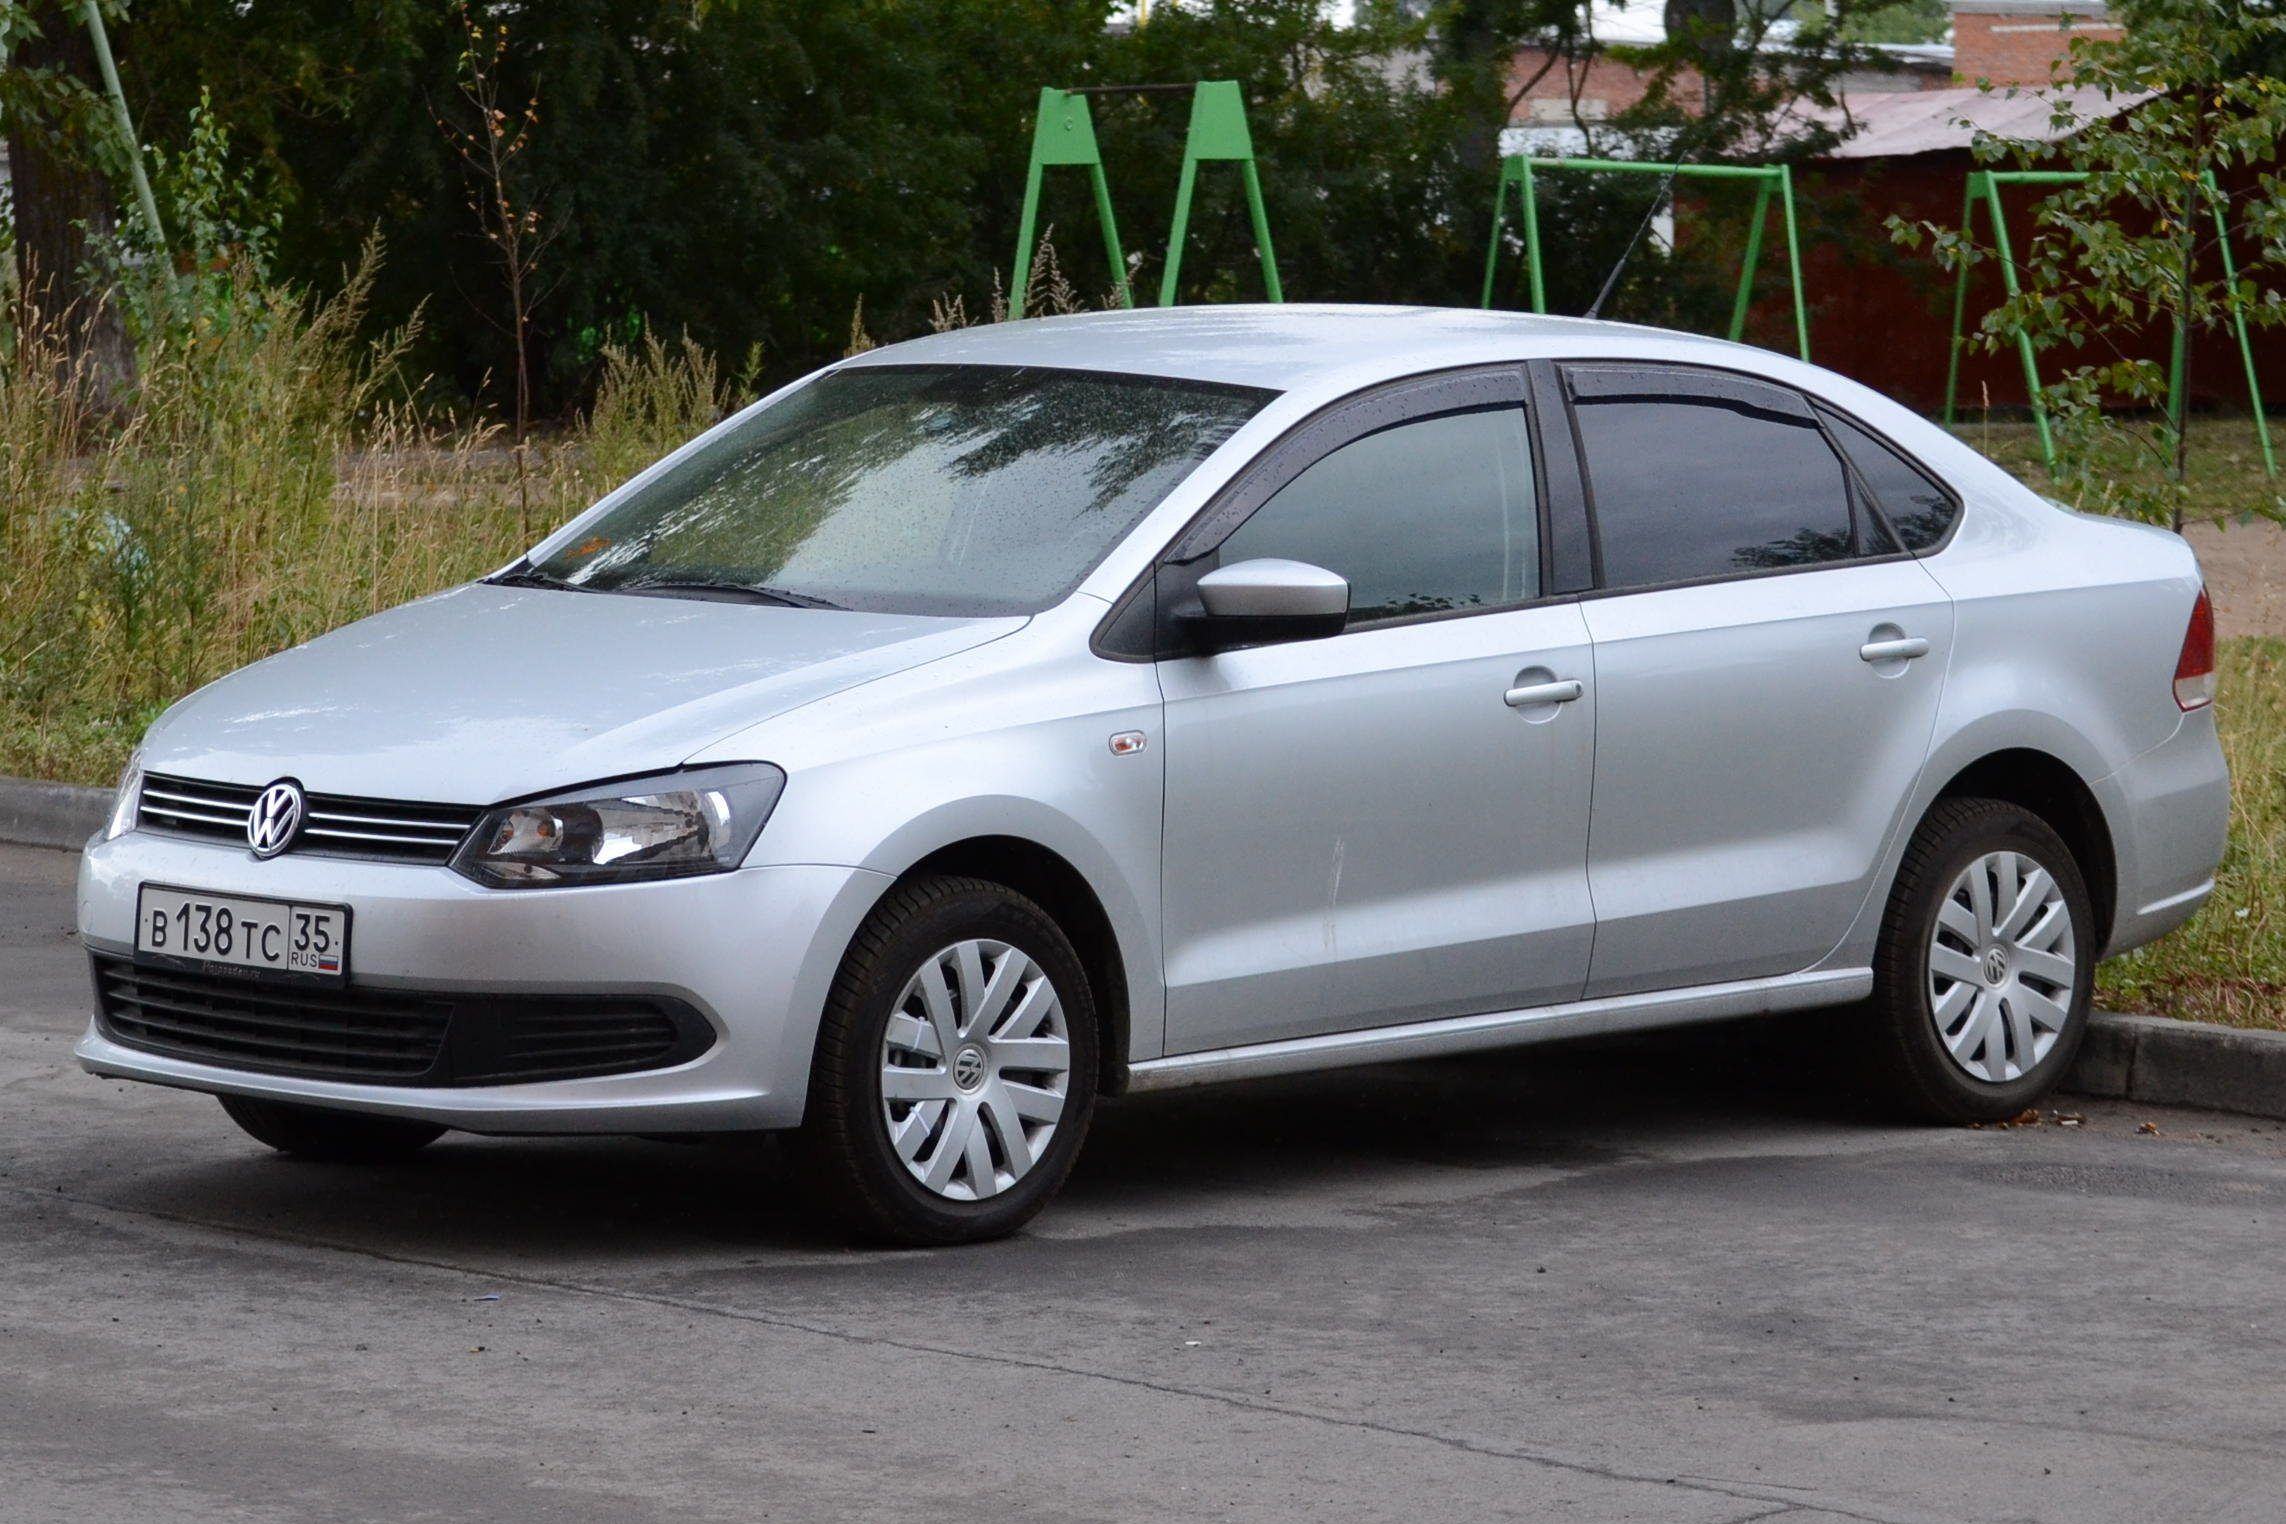 Volkswagen Polo Sedan 2004: Review, Amazing Pictures and Images – Look at the car